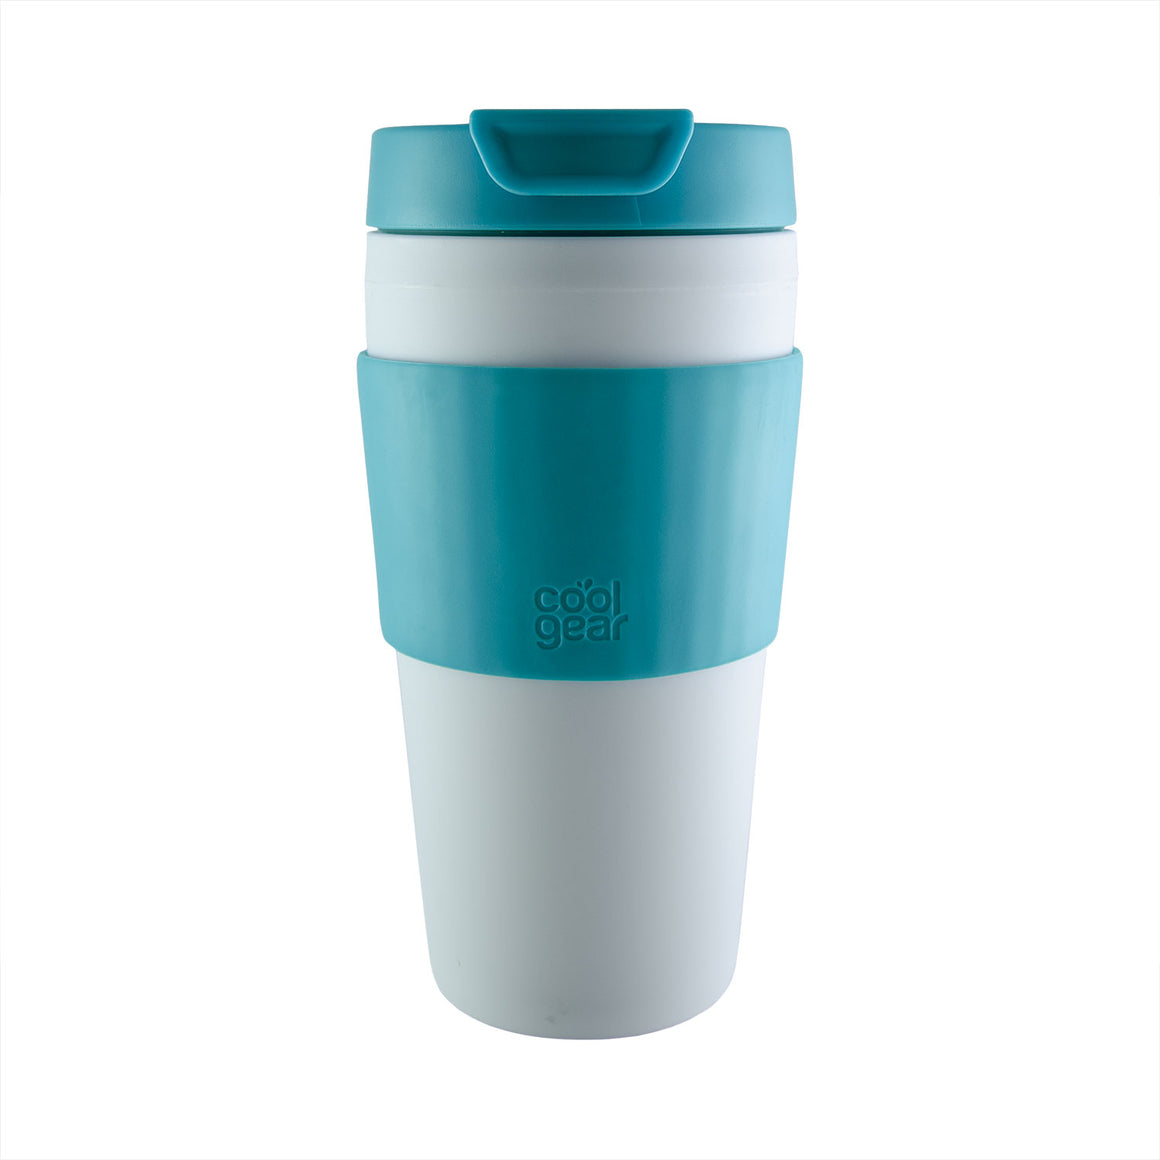 Cool Gear | Callisto 16 Oz Coffee Mug with Band in Aquamarine